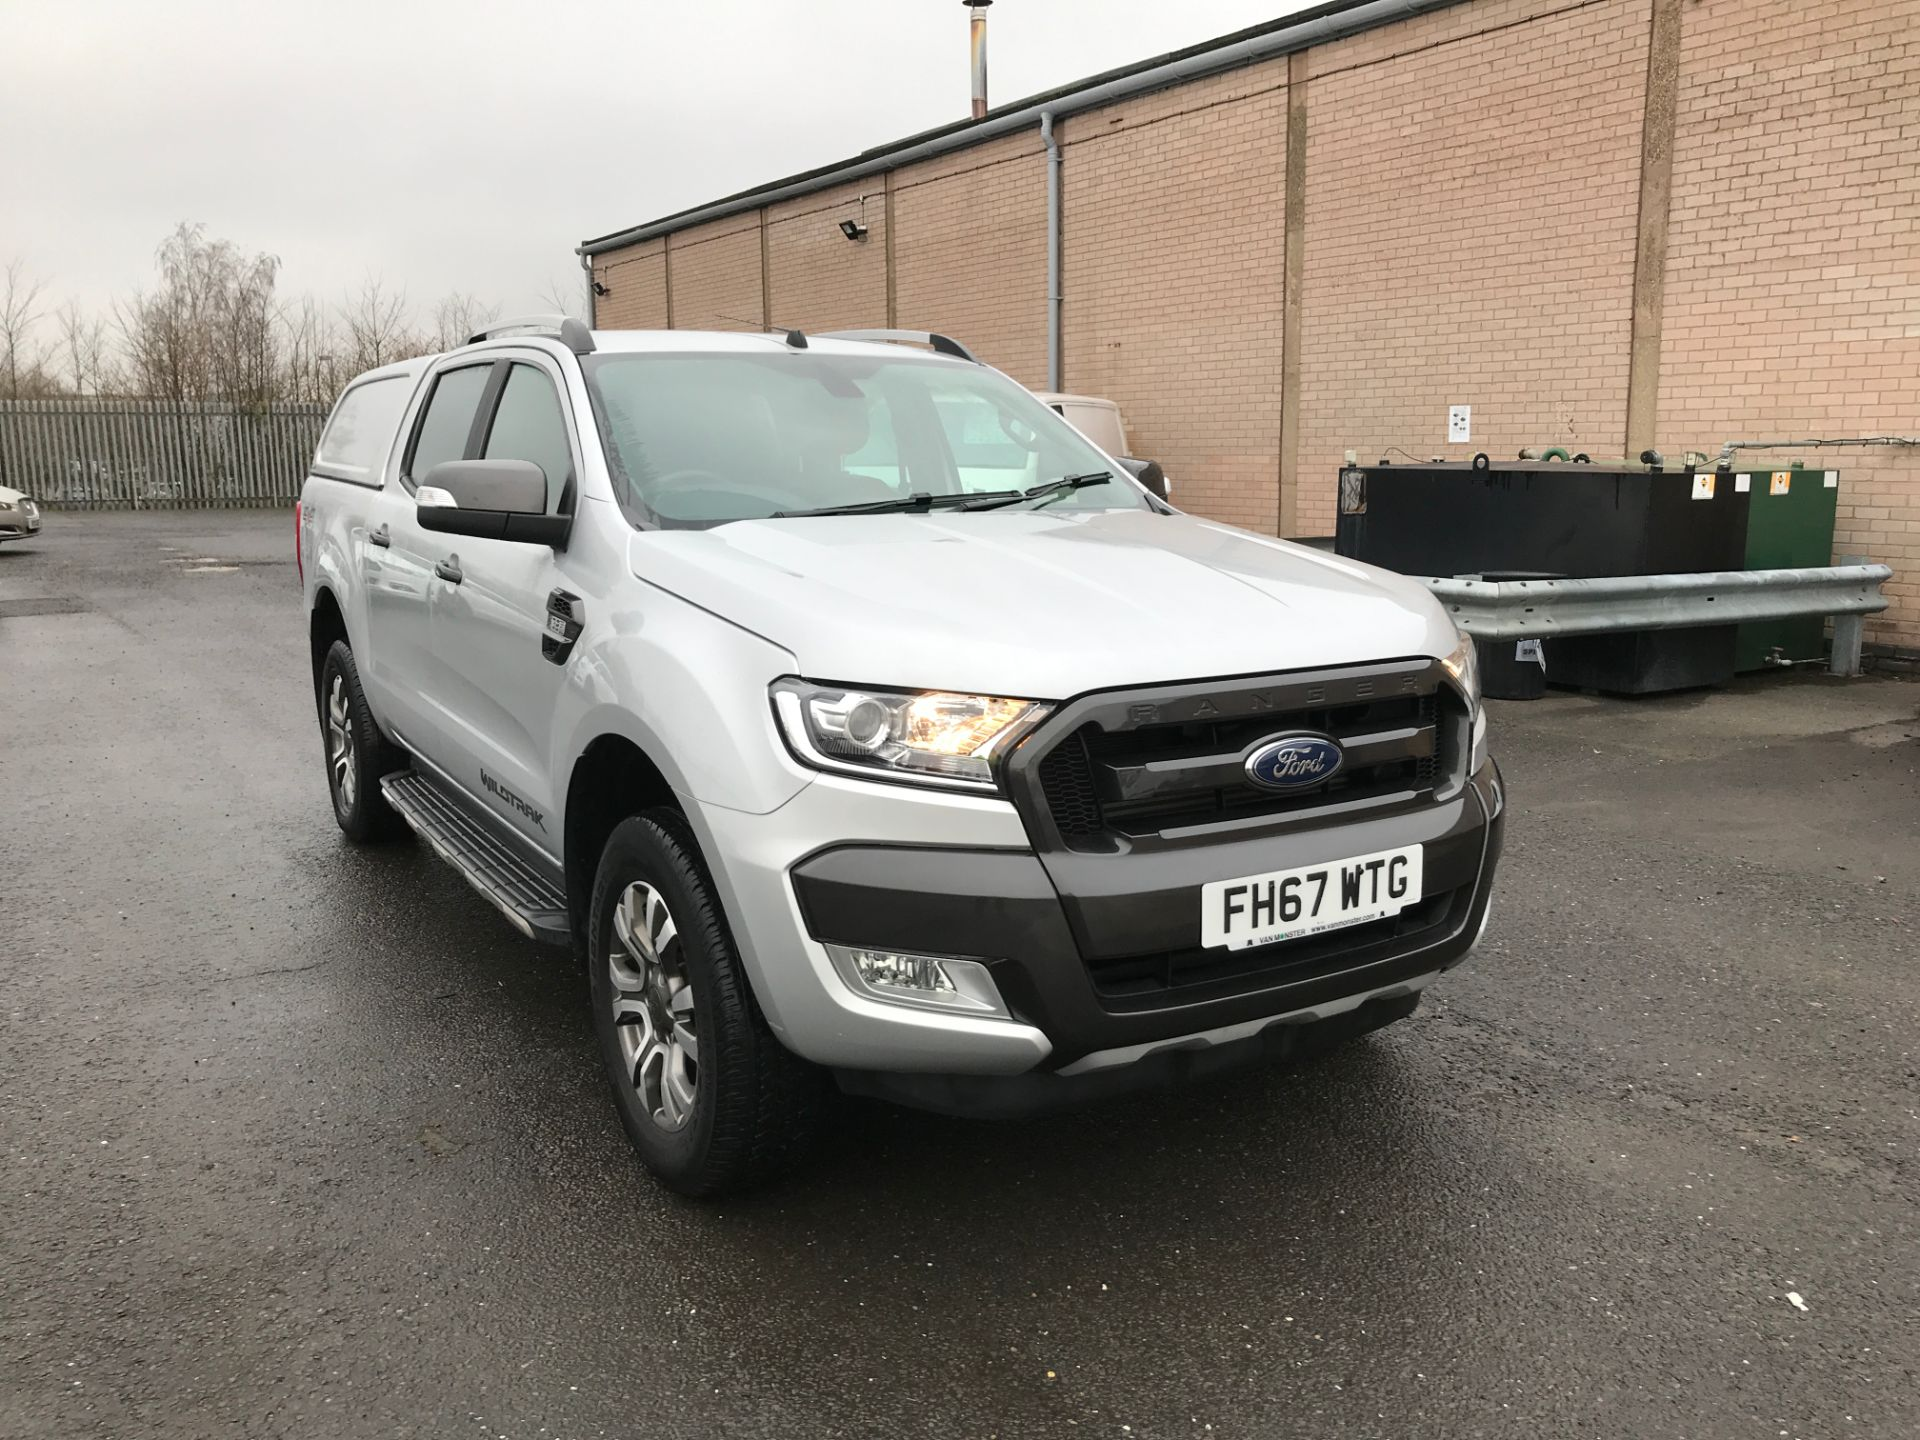 2018 Ford Ranger DOUBLE CAB 4X4 WILDTRAK 3.2TDI 200PS EURO 5 (FH67WTG)